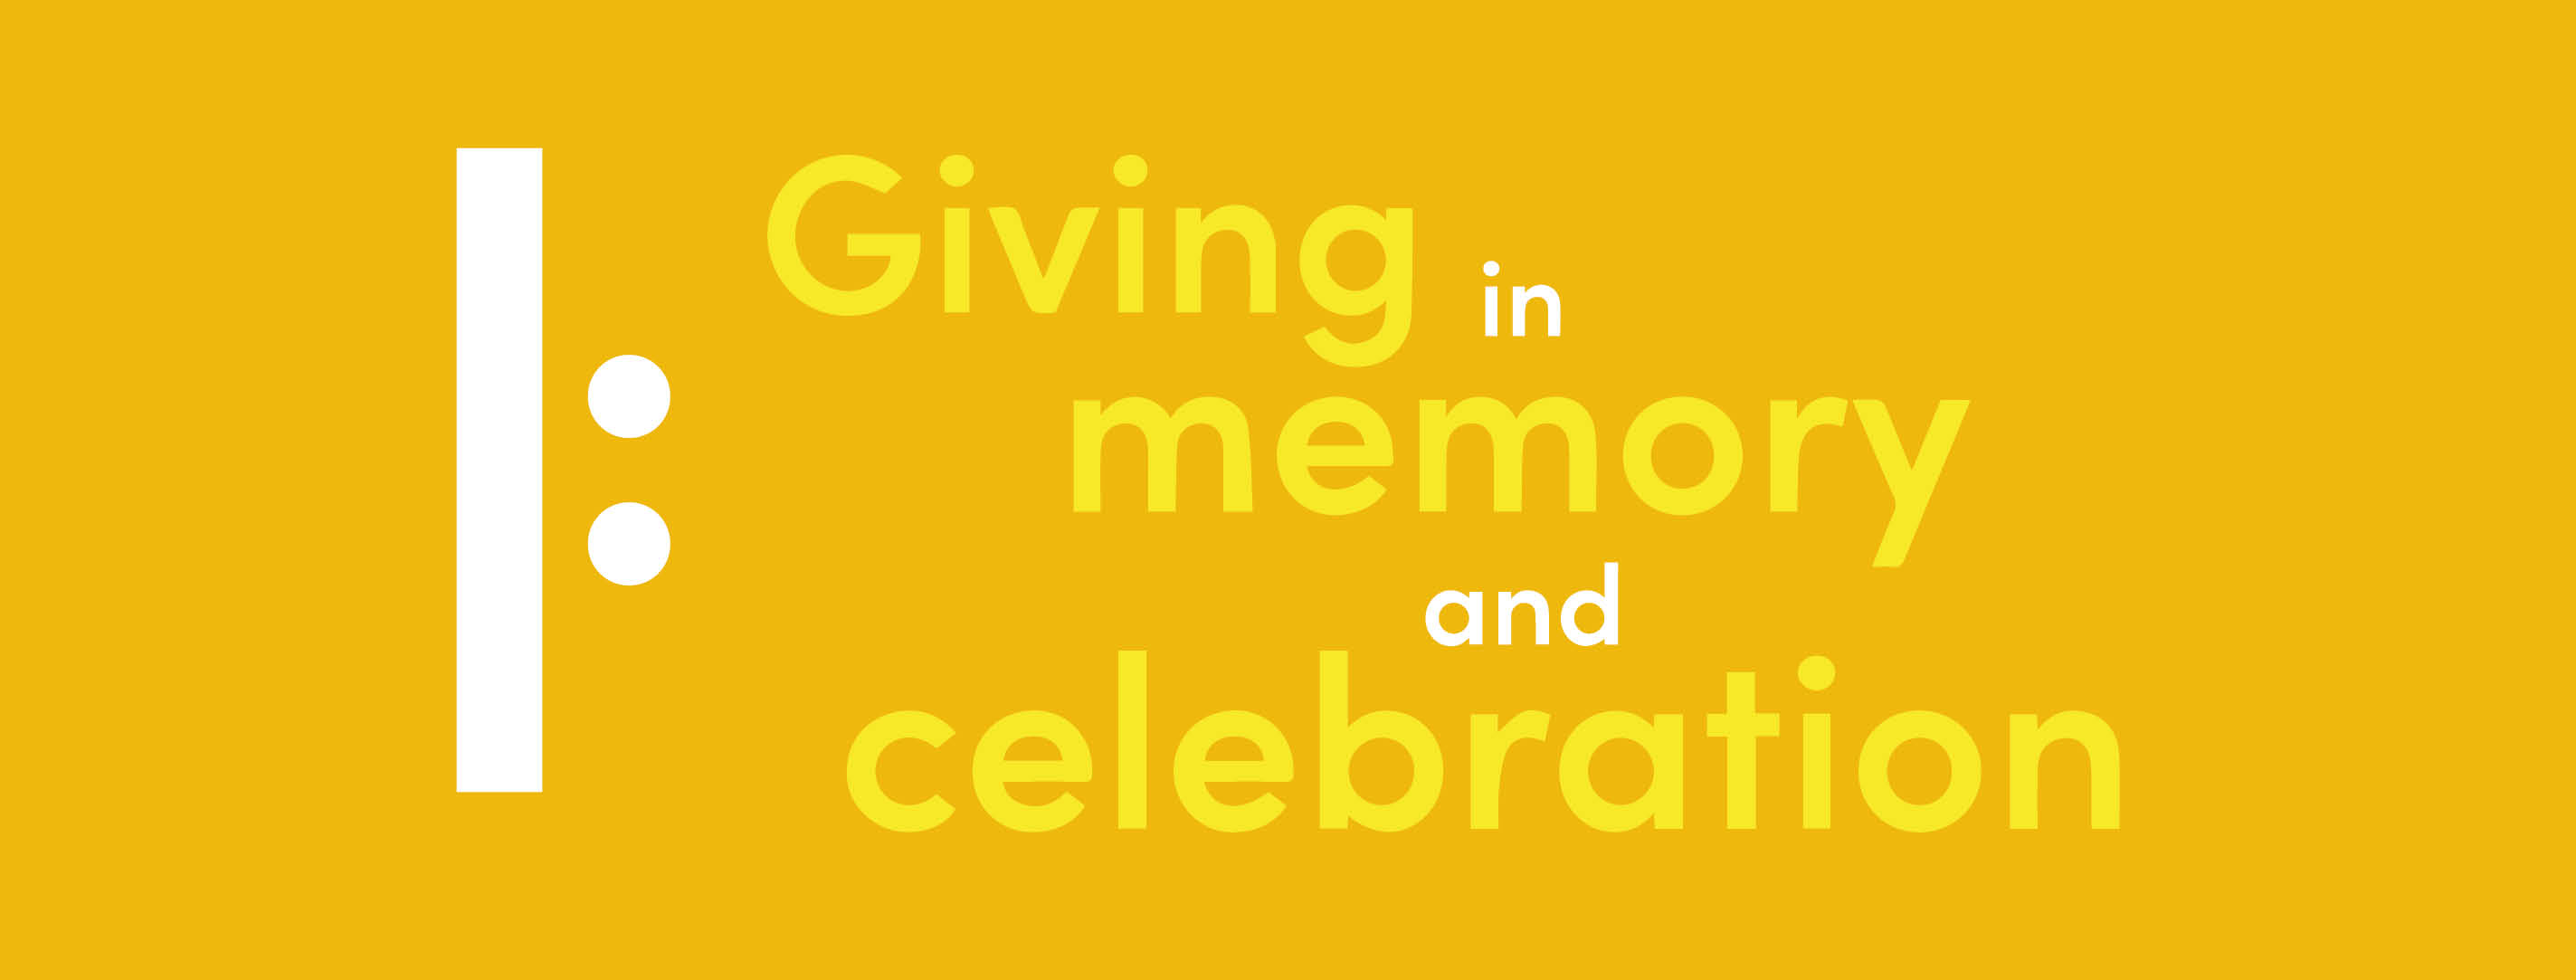 Support Our Work - Giving in Memory & Celebration